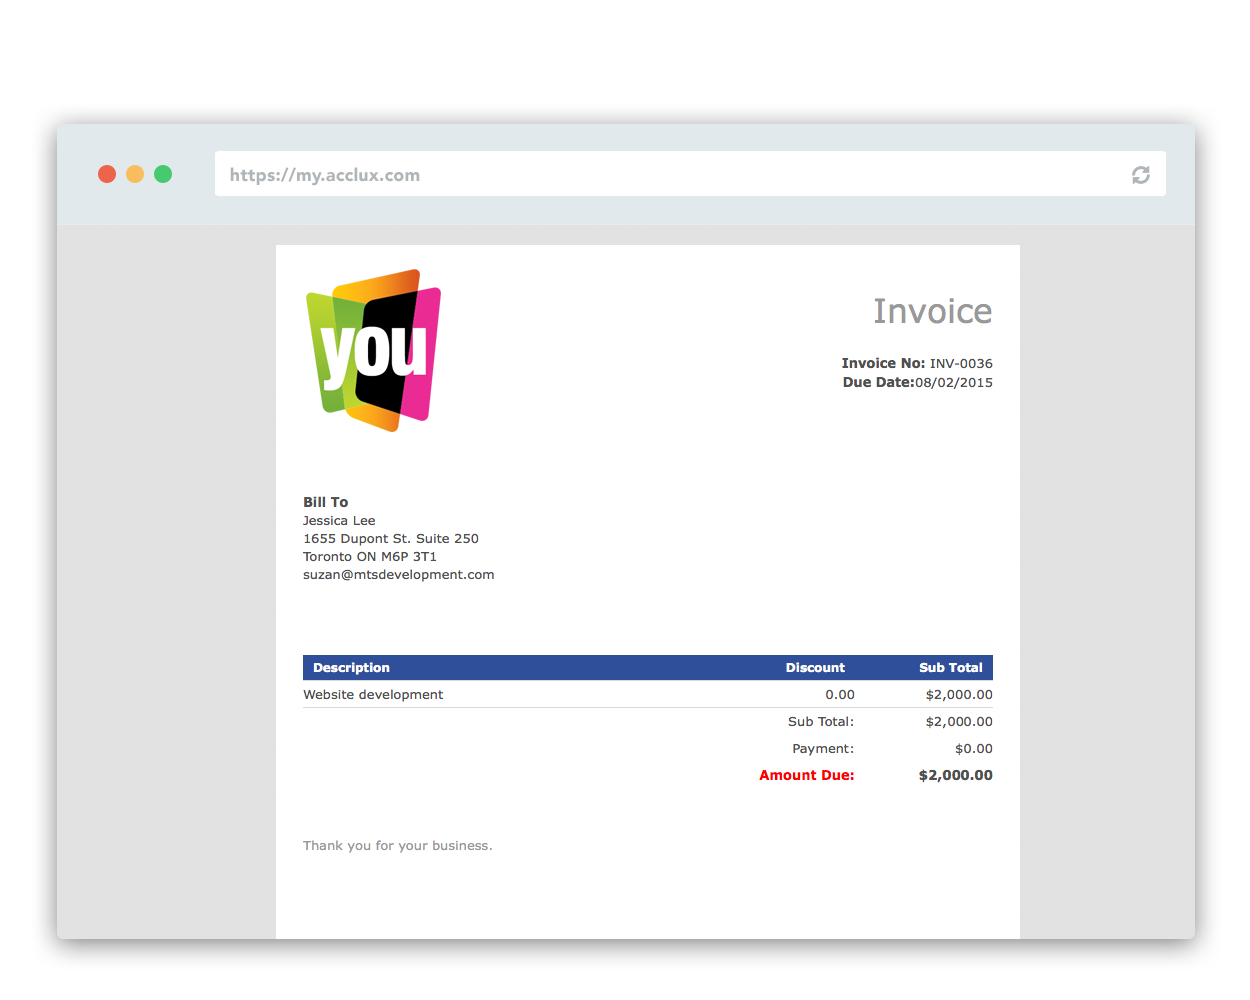 Client Invoice Portal to get paid online with acclux and paypal